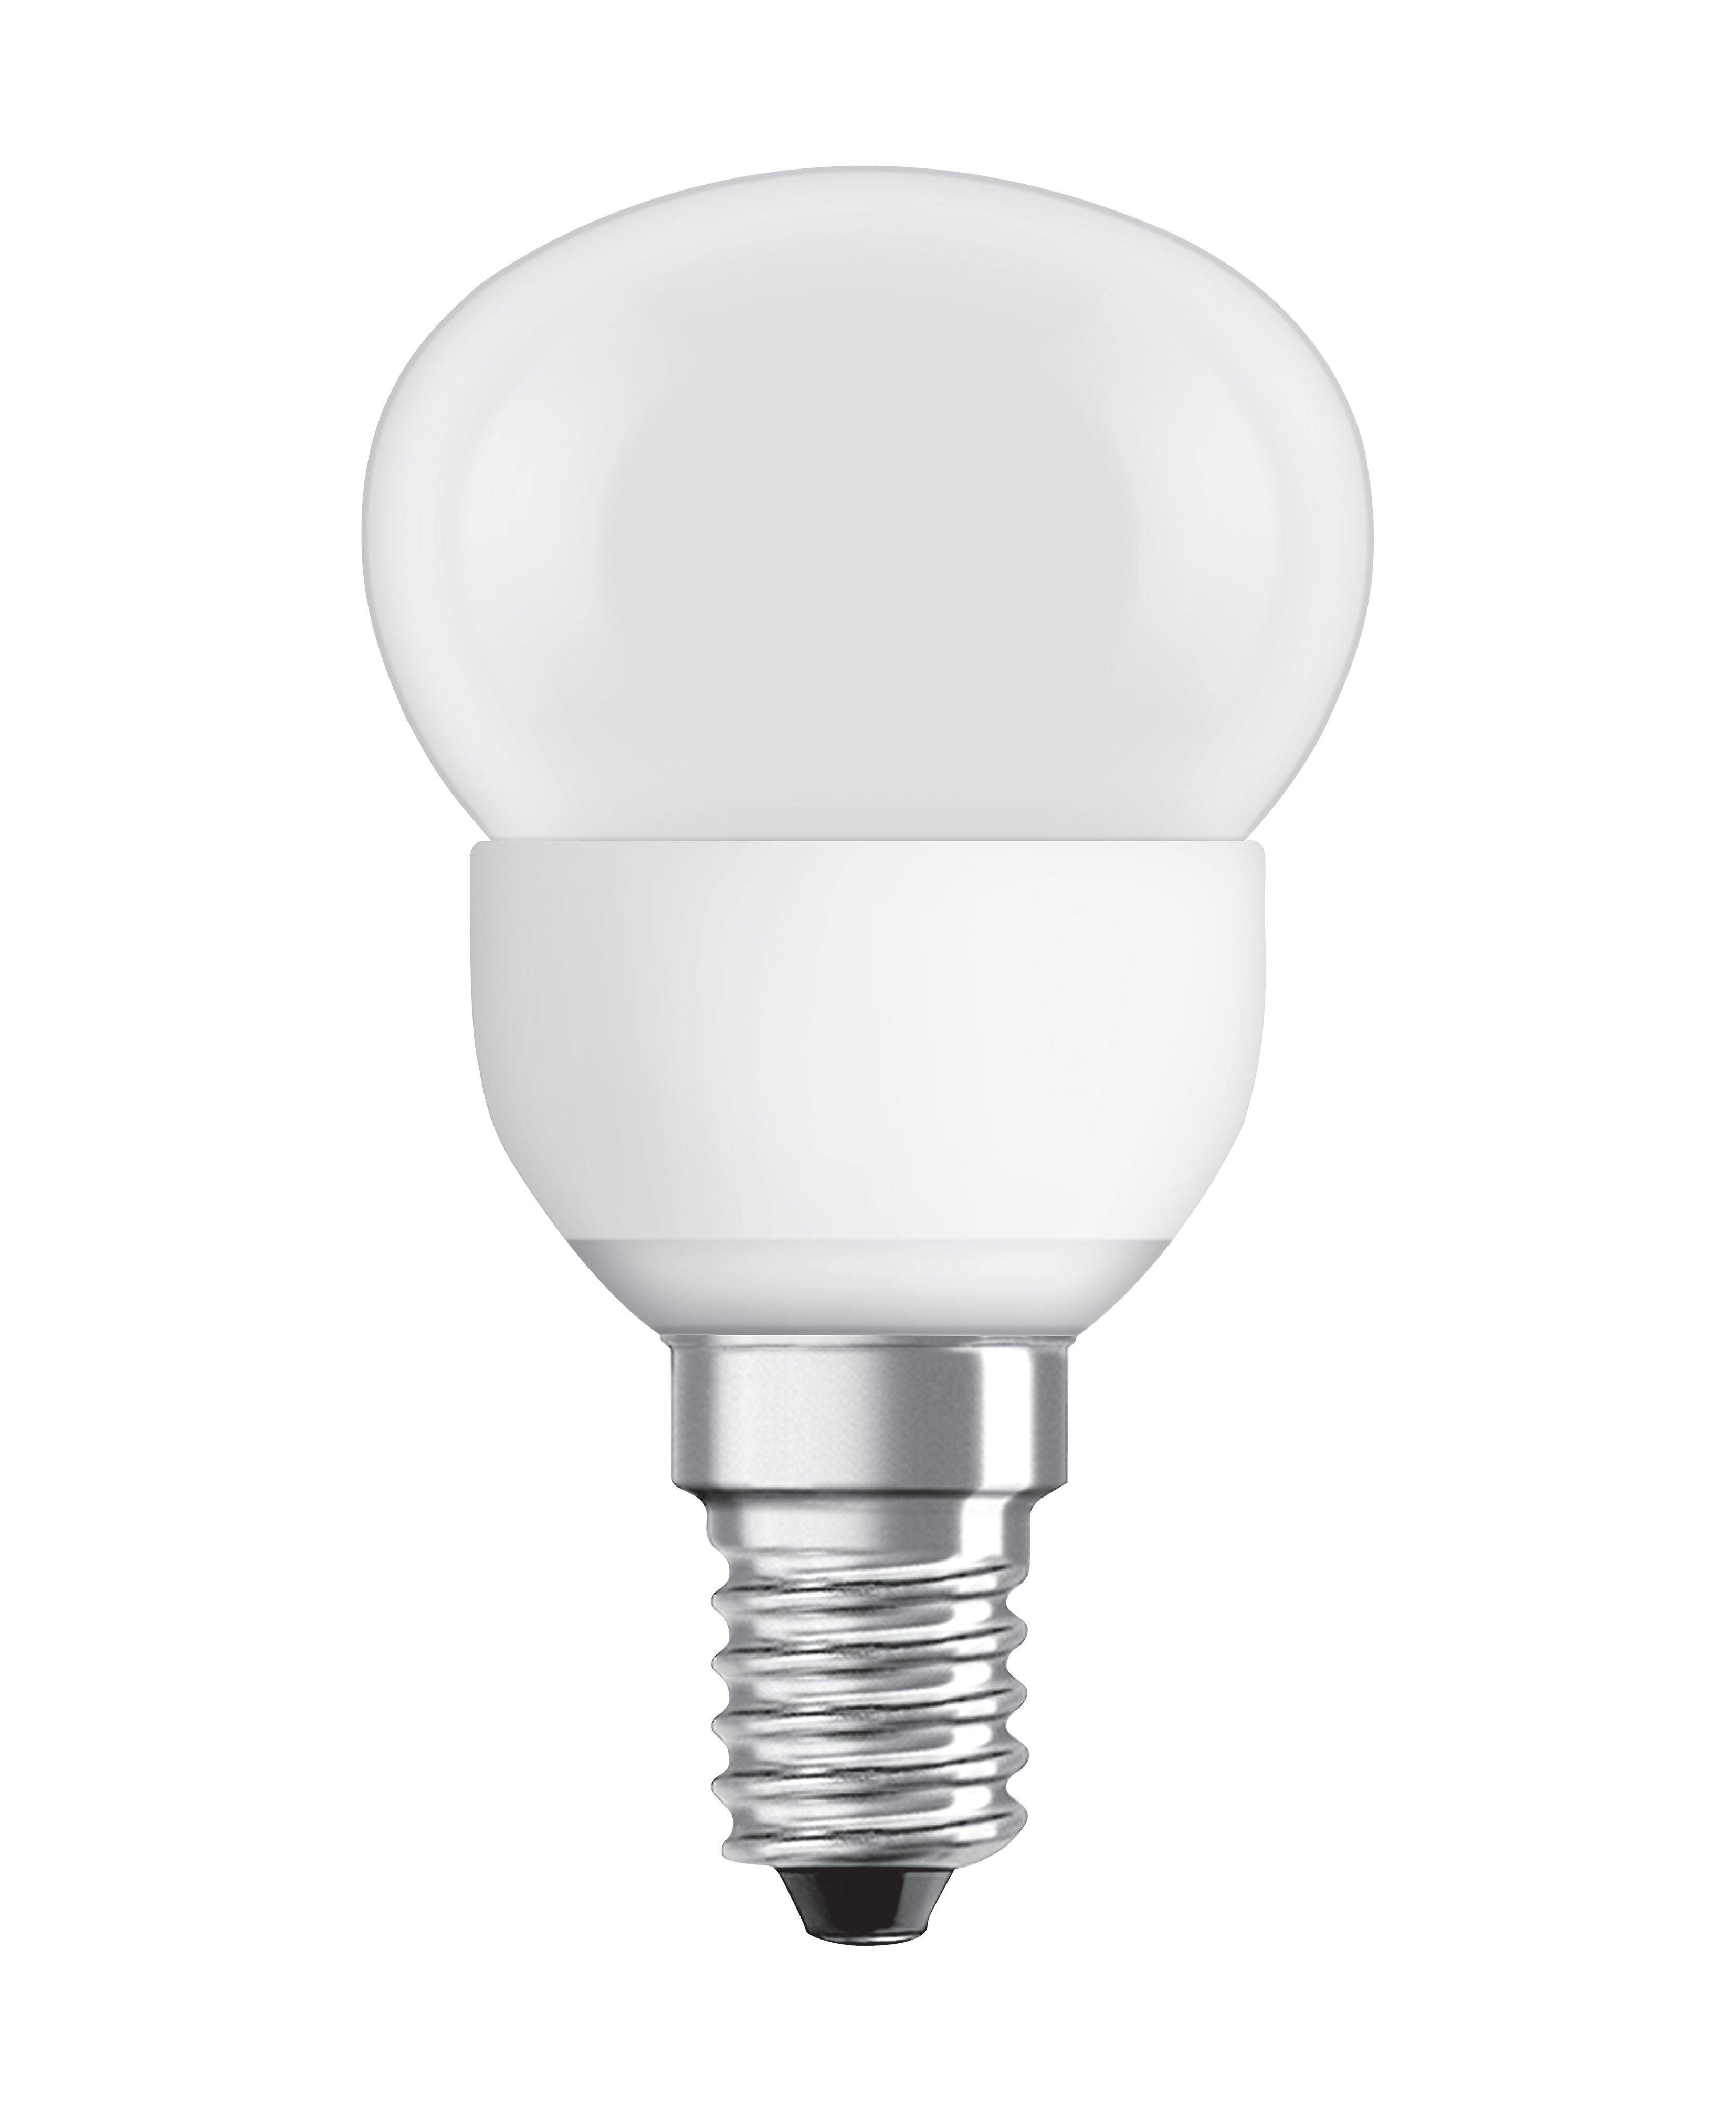 Osram 3.6 Watt LED Mini Globe Bulb